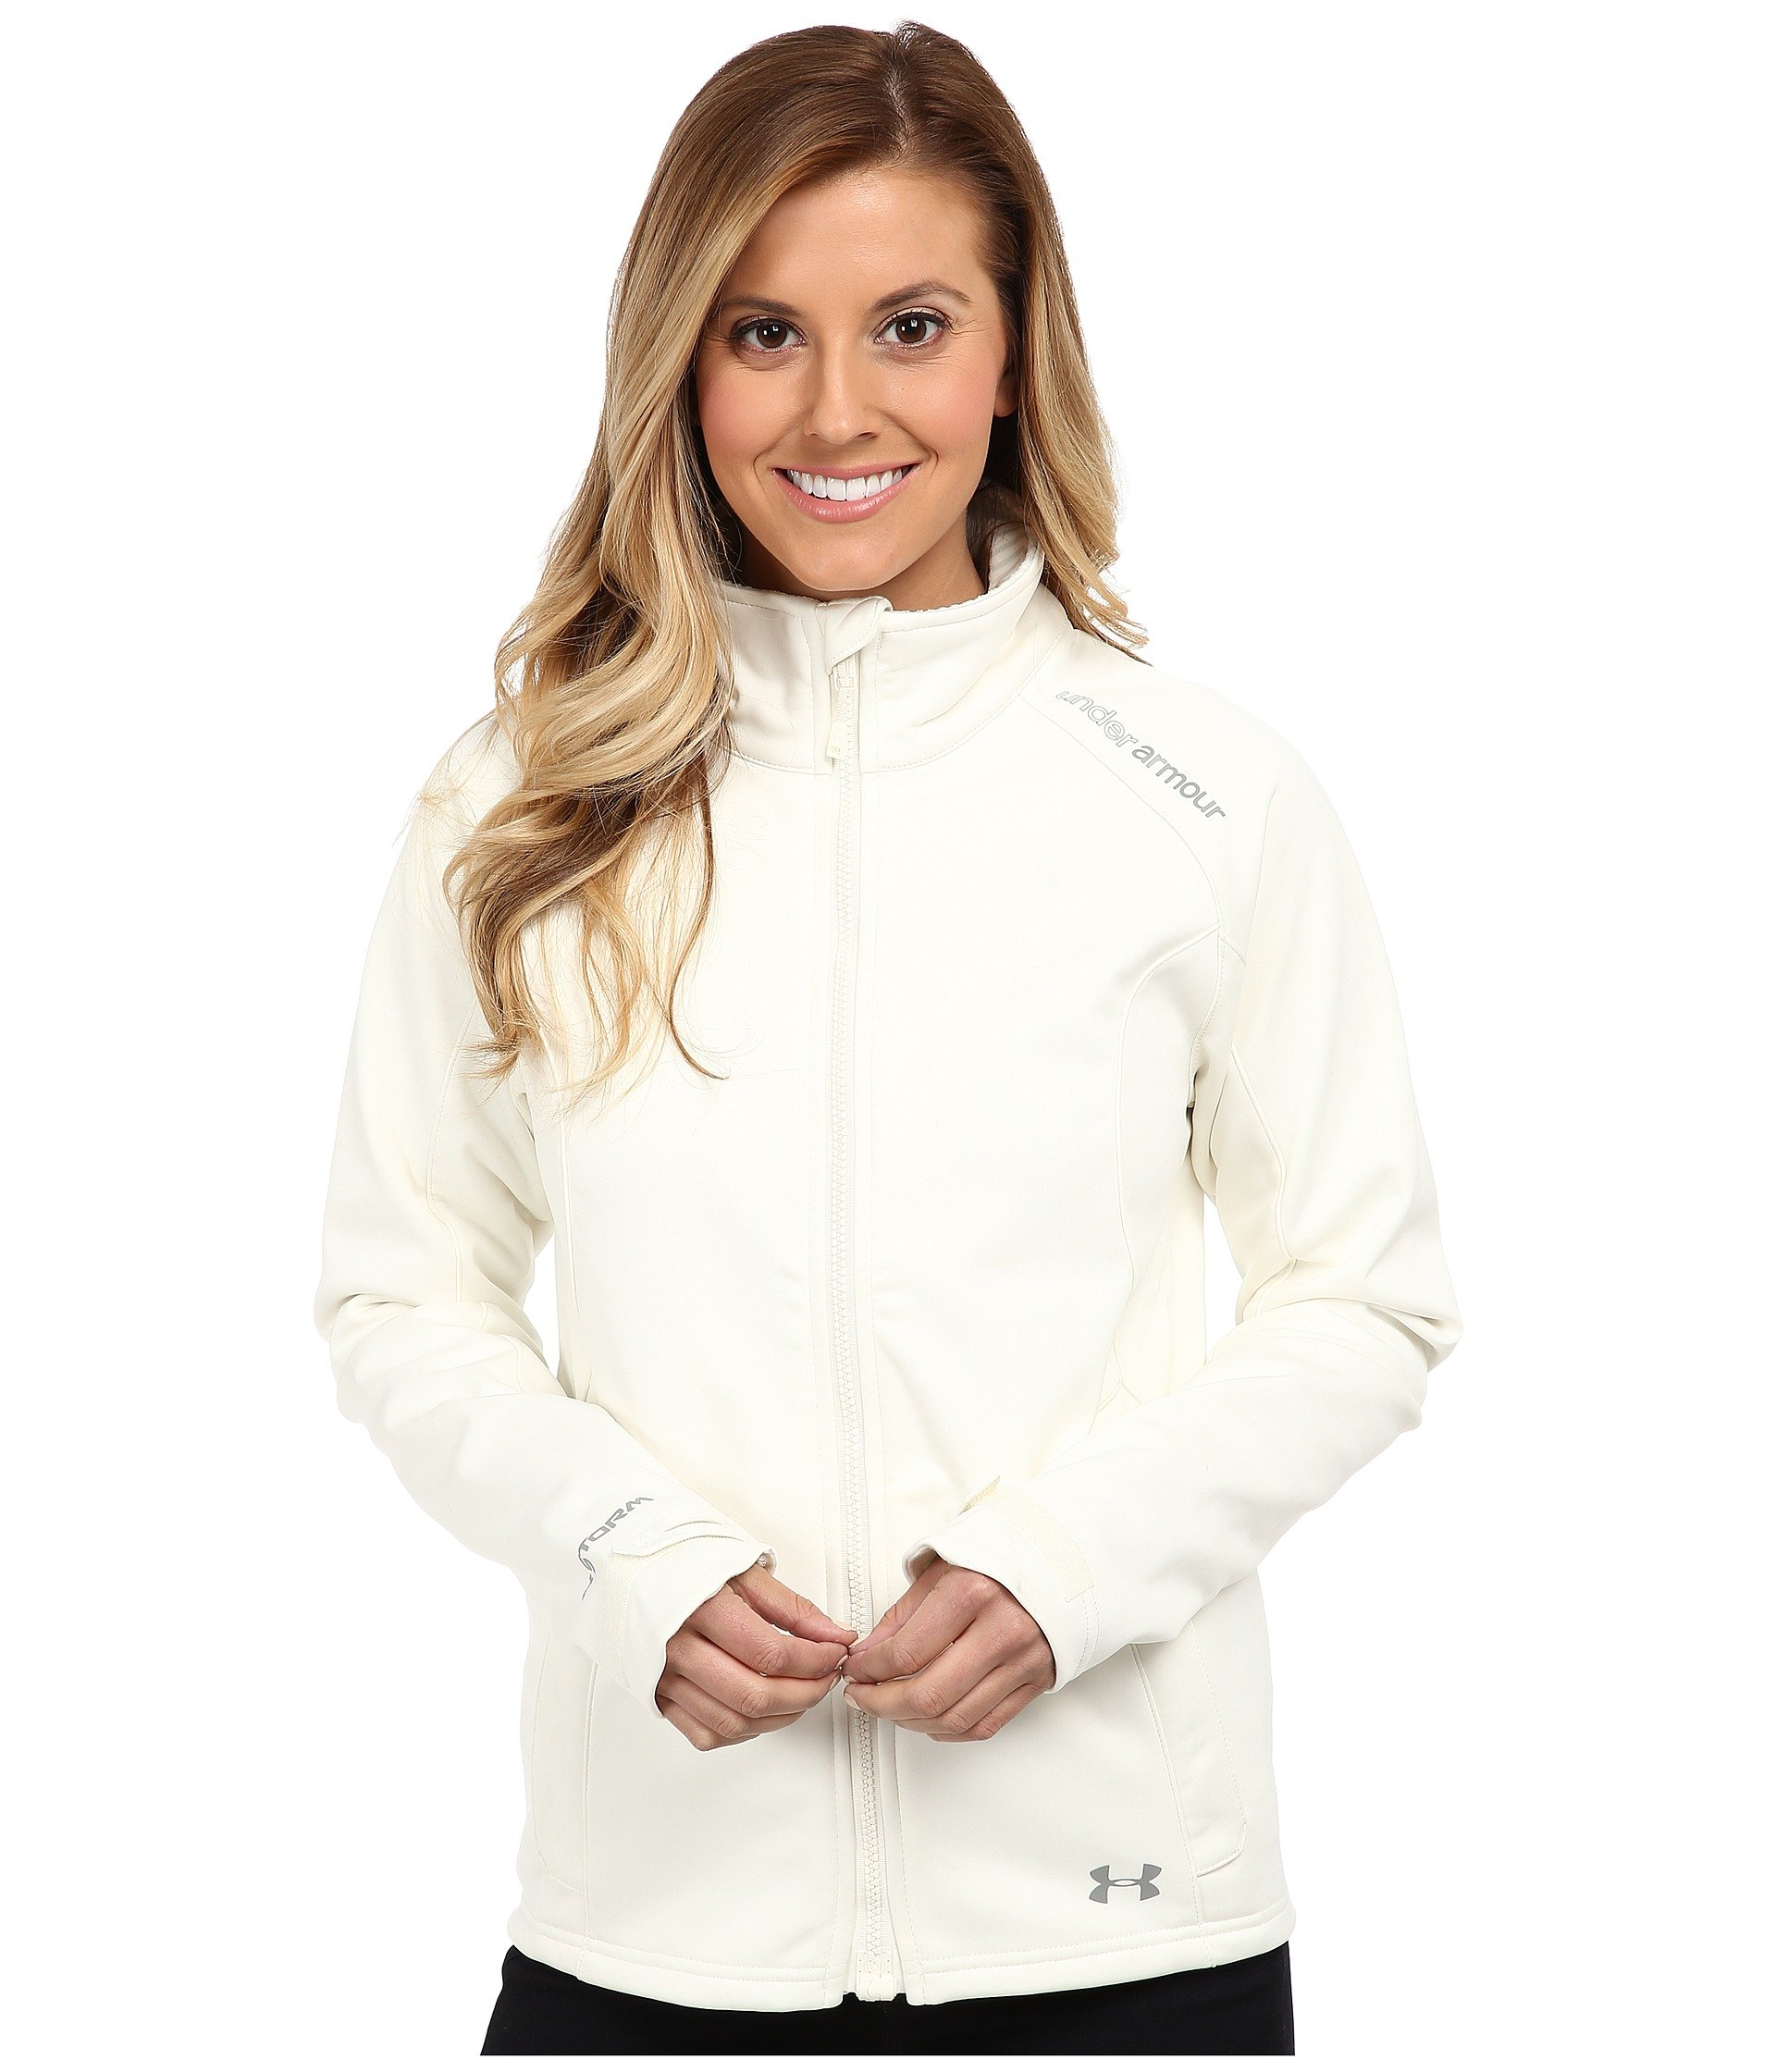 Under Armour Women's UA ColdGear Infrared Softershell Jacket, Ivory Steeple Gray, XS (US 0-2)